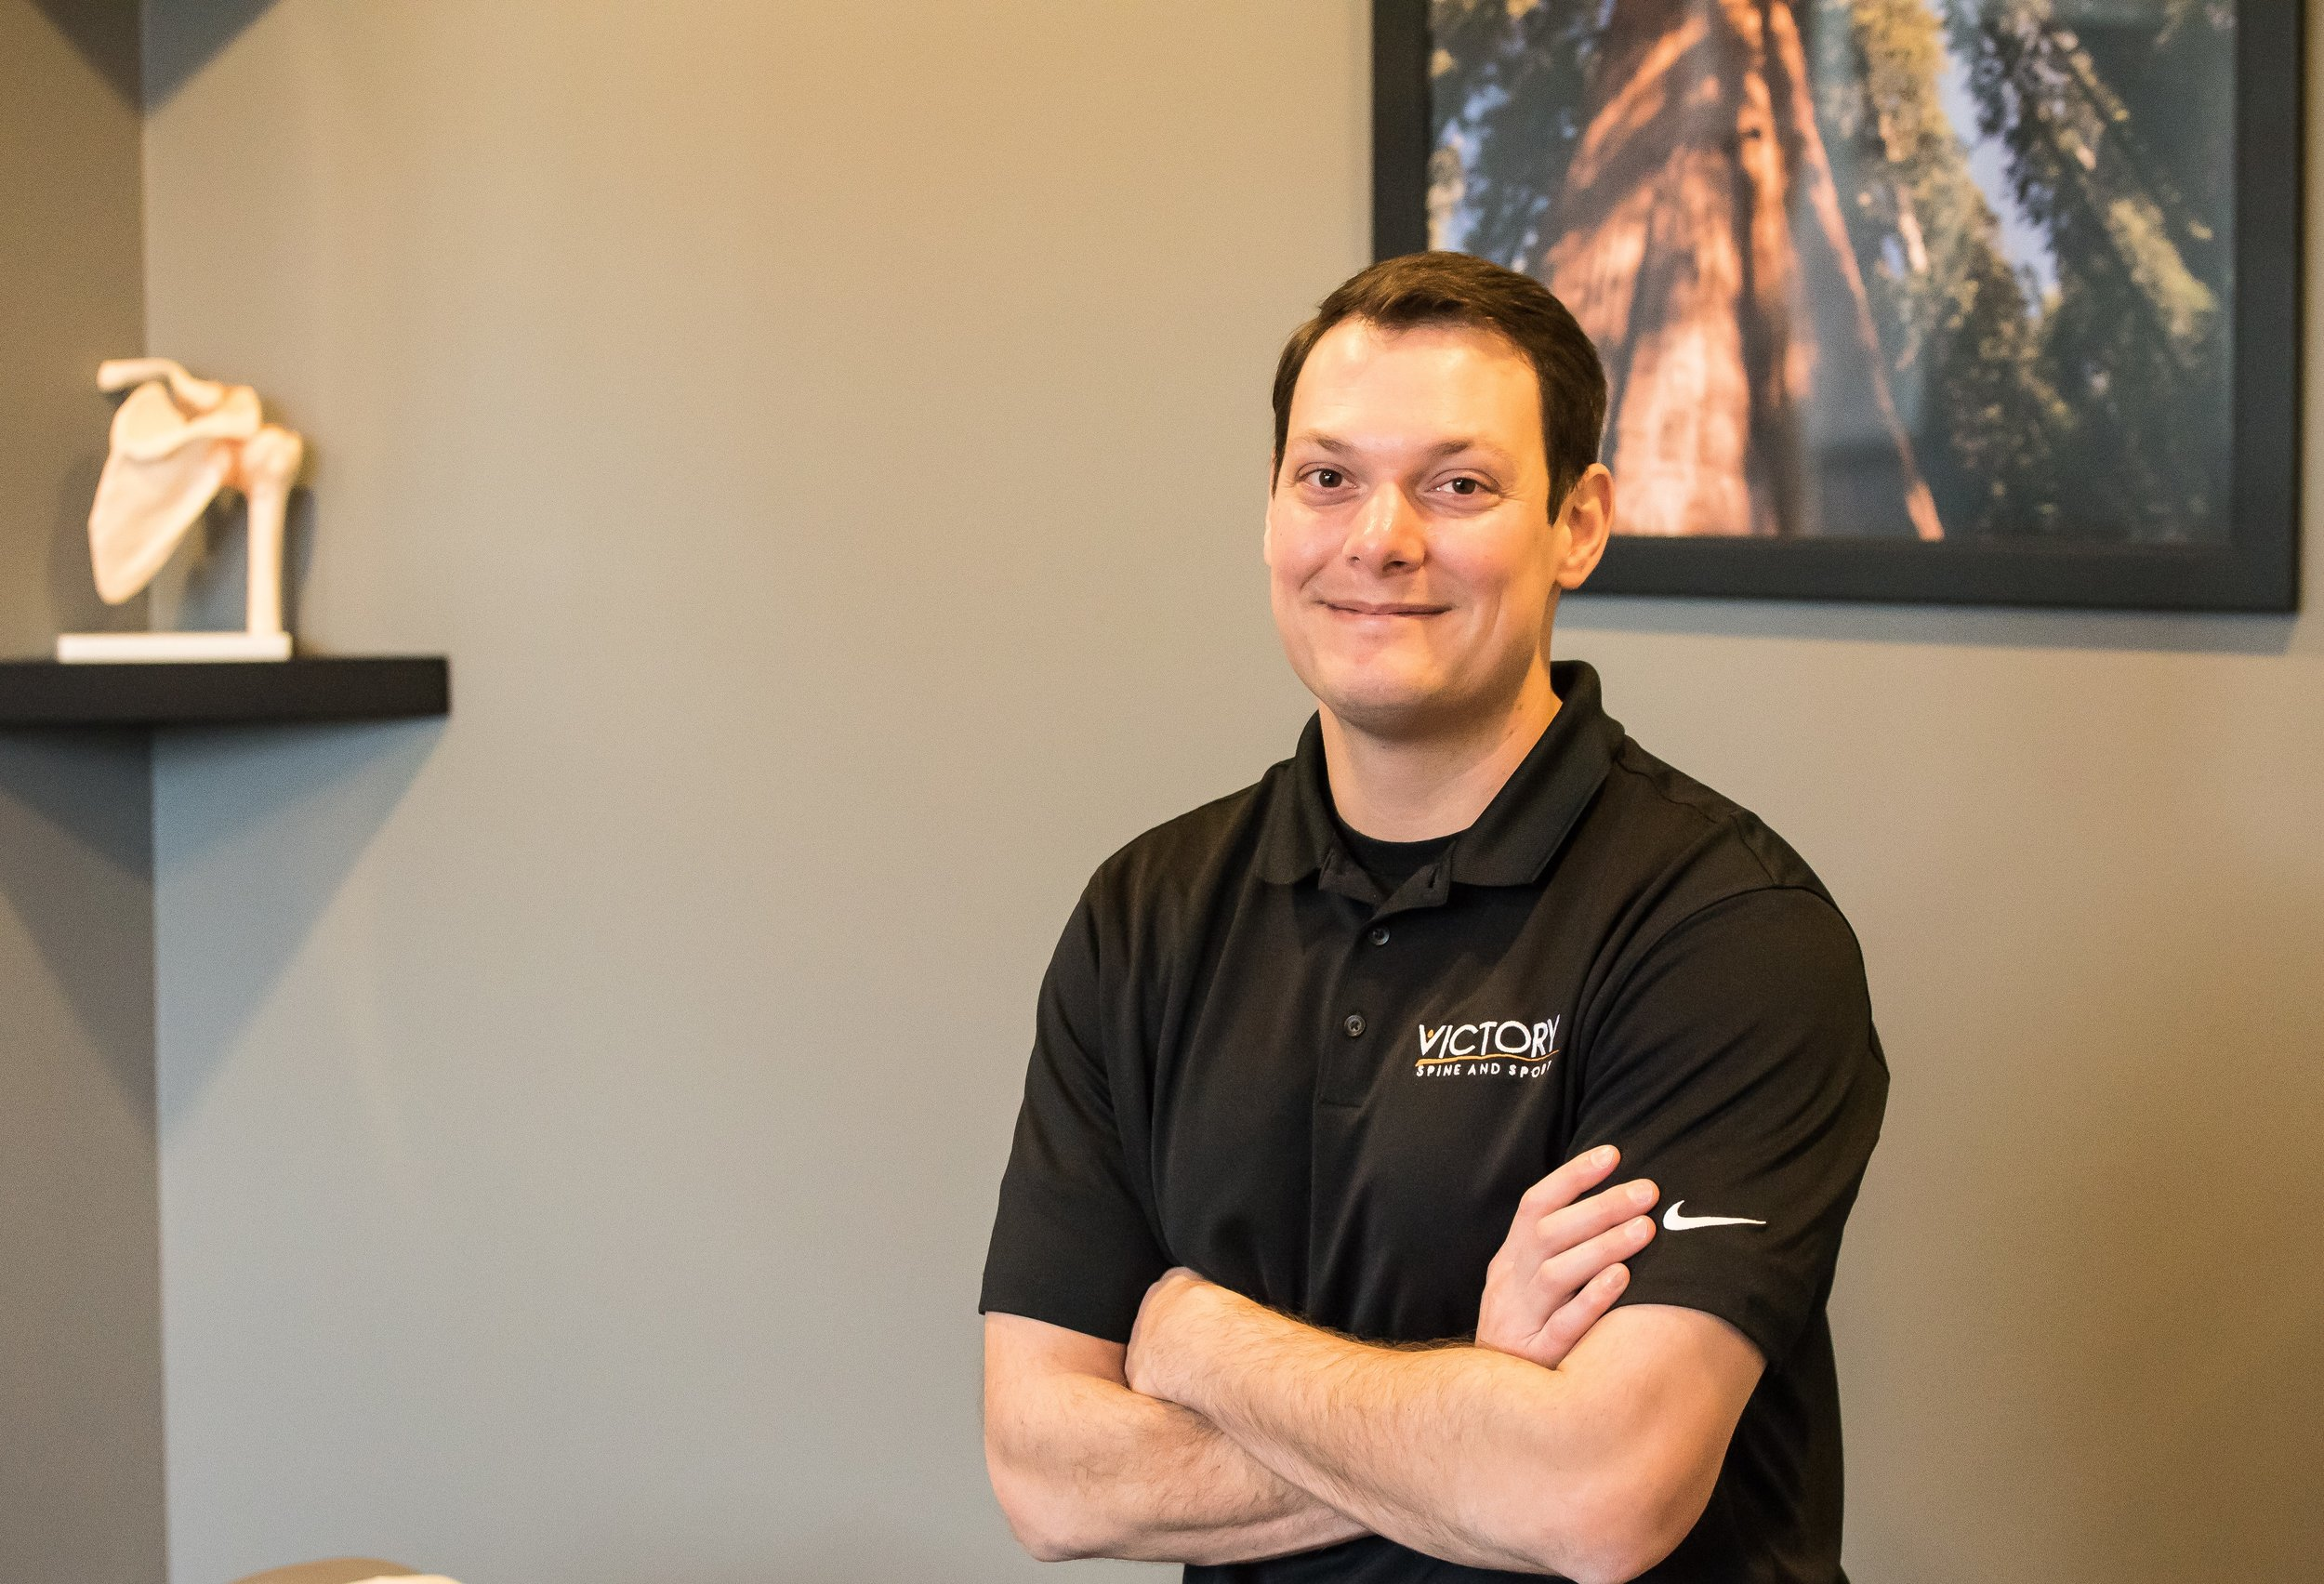 Dr. Henry is a chiropractor who serves Camas, Vancouver, and Washougal Washington.